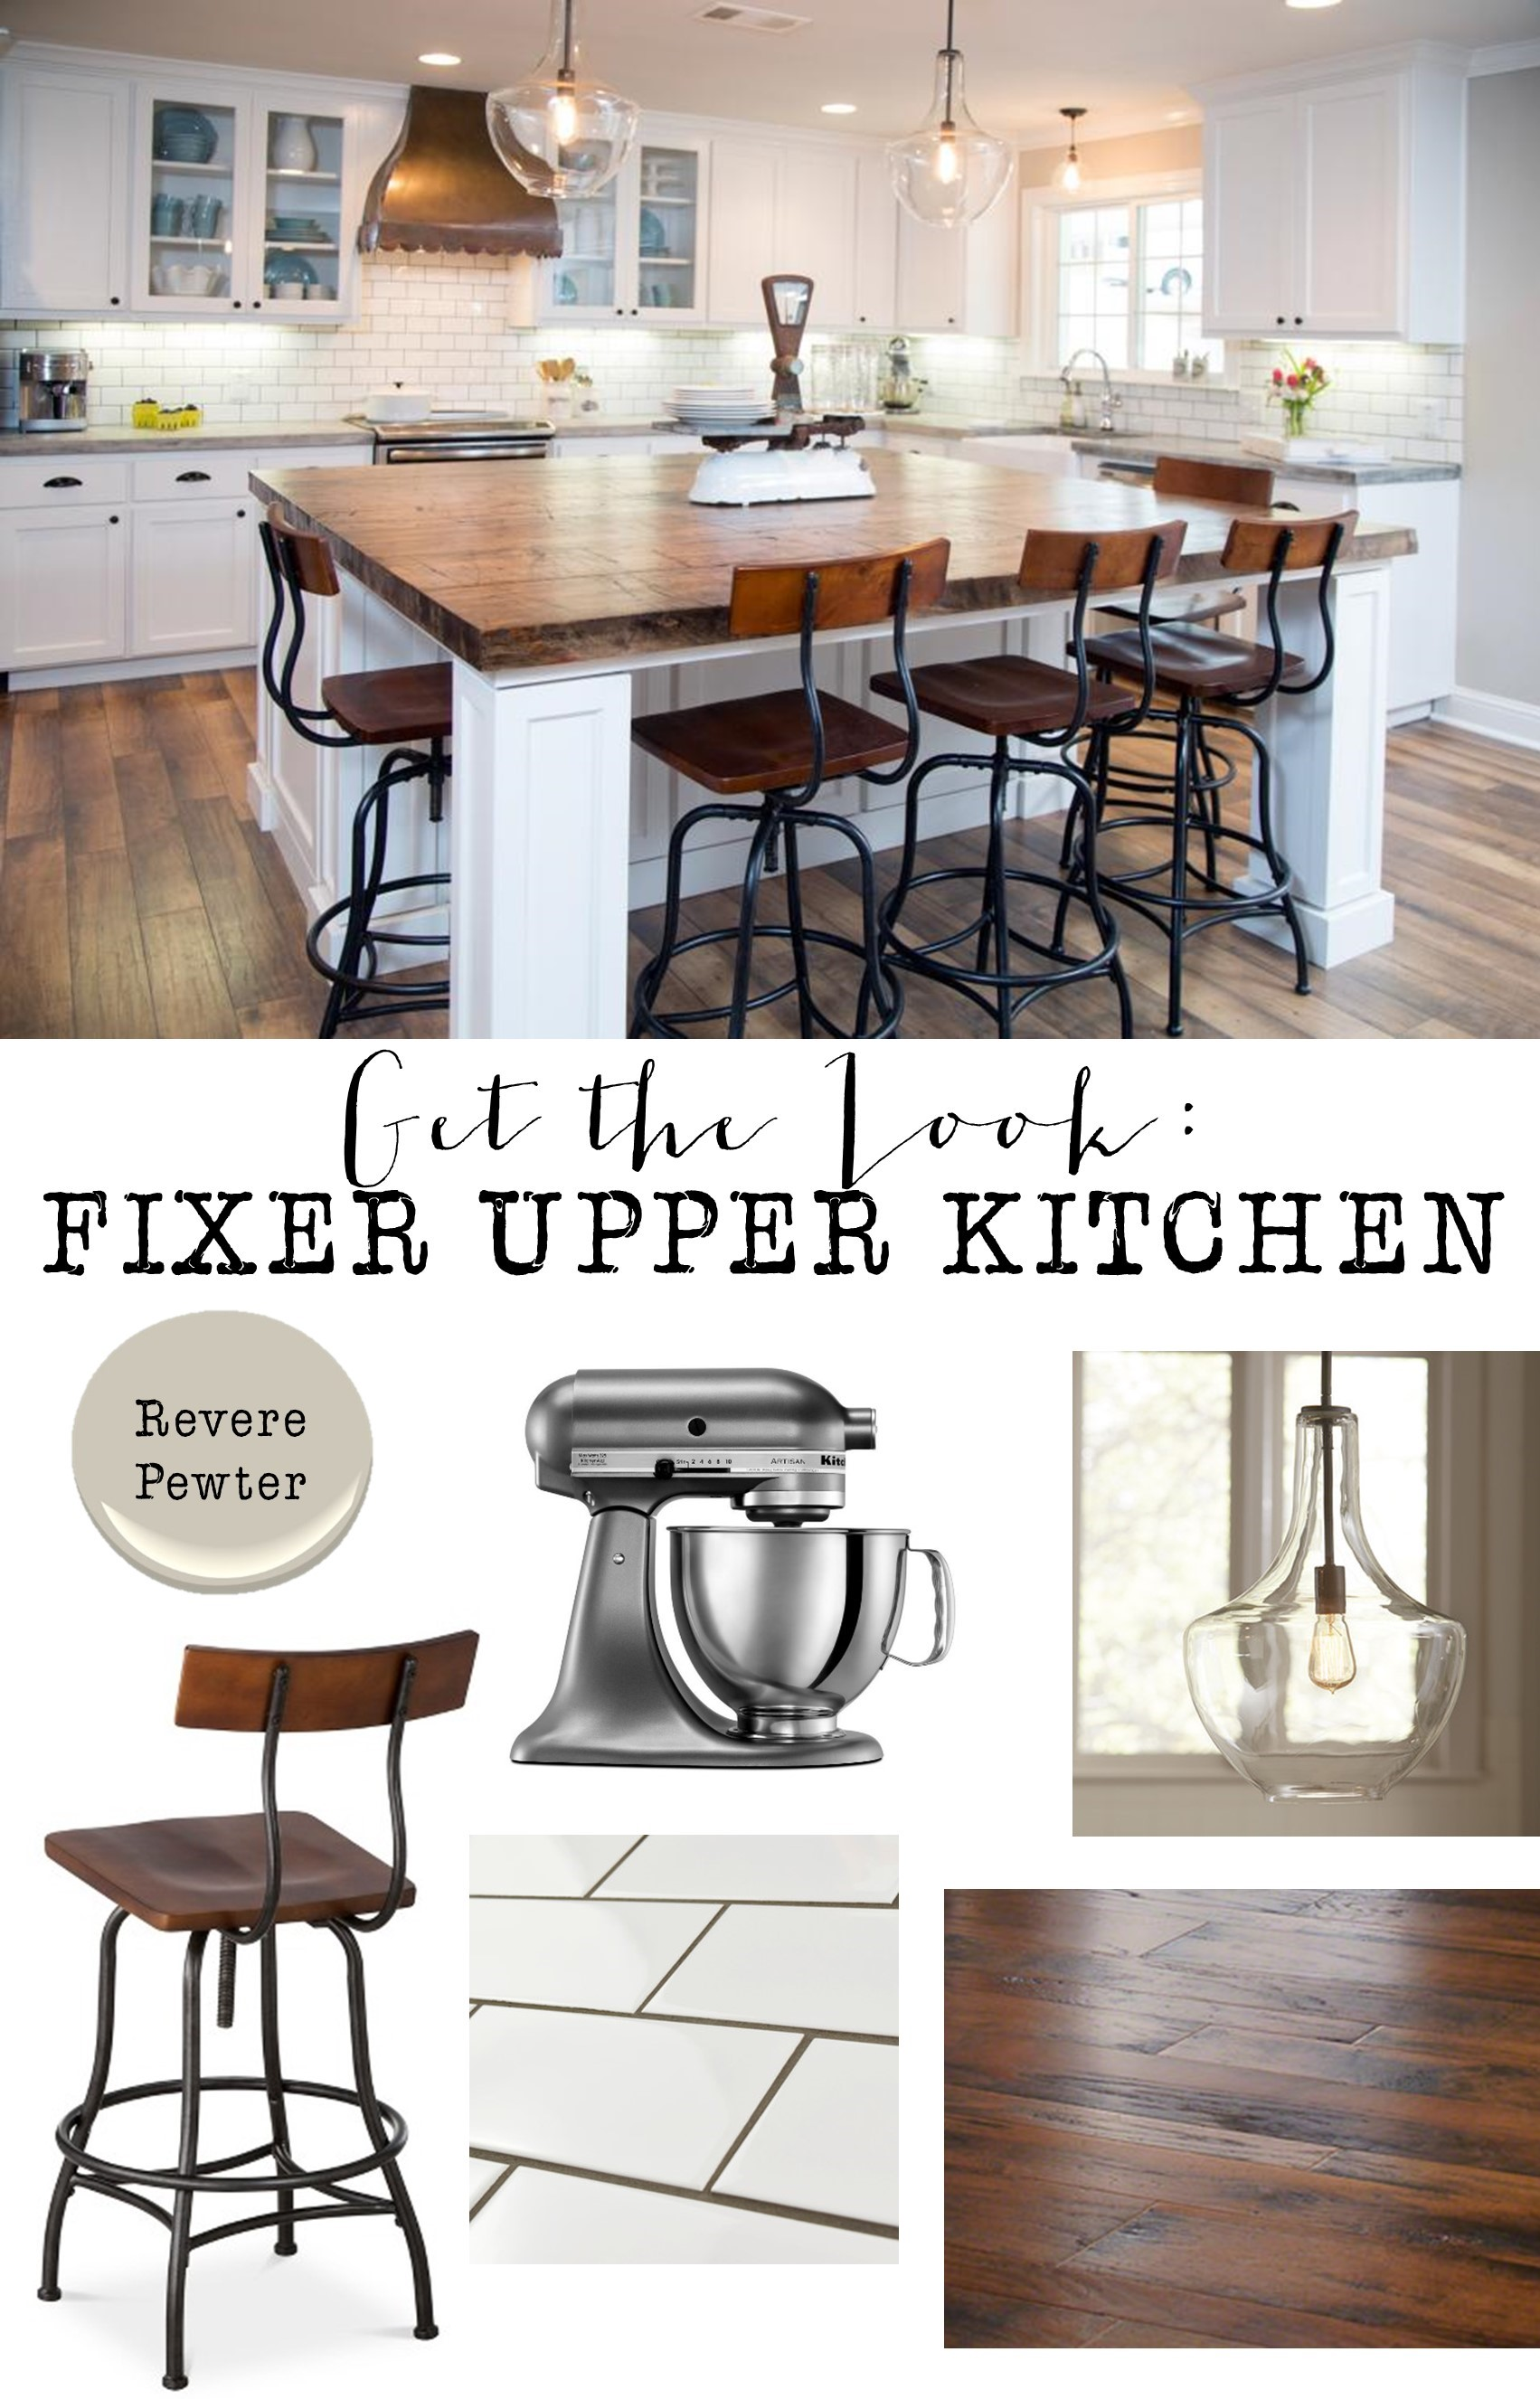 Fixer upper gaines kitchen - Get The Look Fixer Upper Kitchen 6